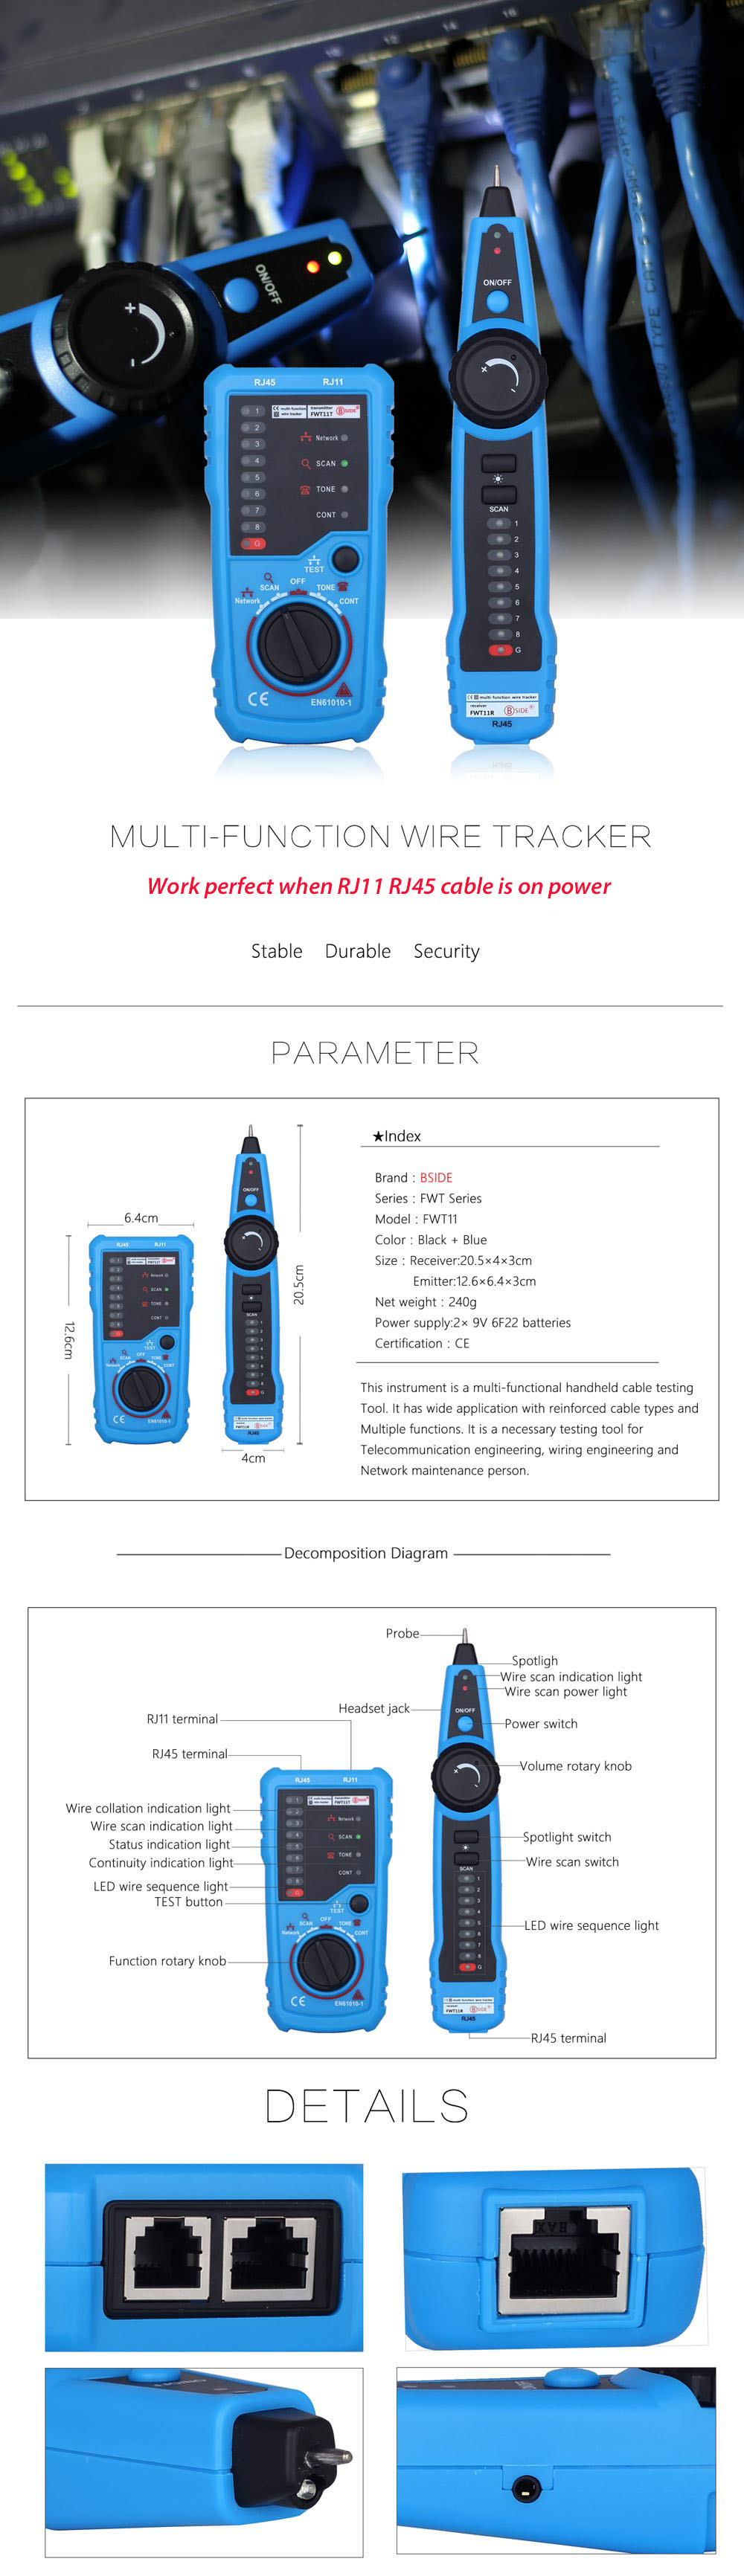 B Tracker Wiring Schematic Bside Fwt11 Rj45 Rj11 Telephone Wire Line Finder 2306 Handheld Network Cable Tester Blue And Black